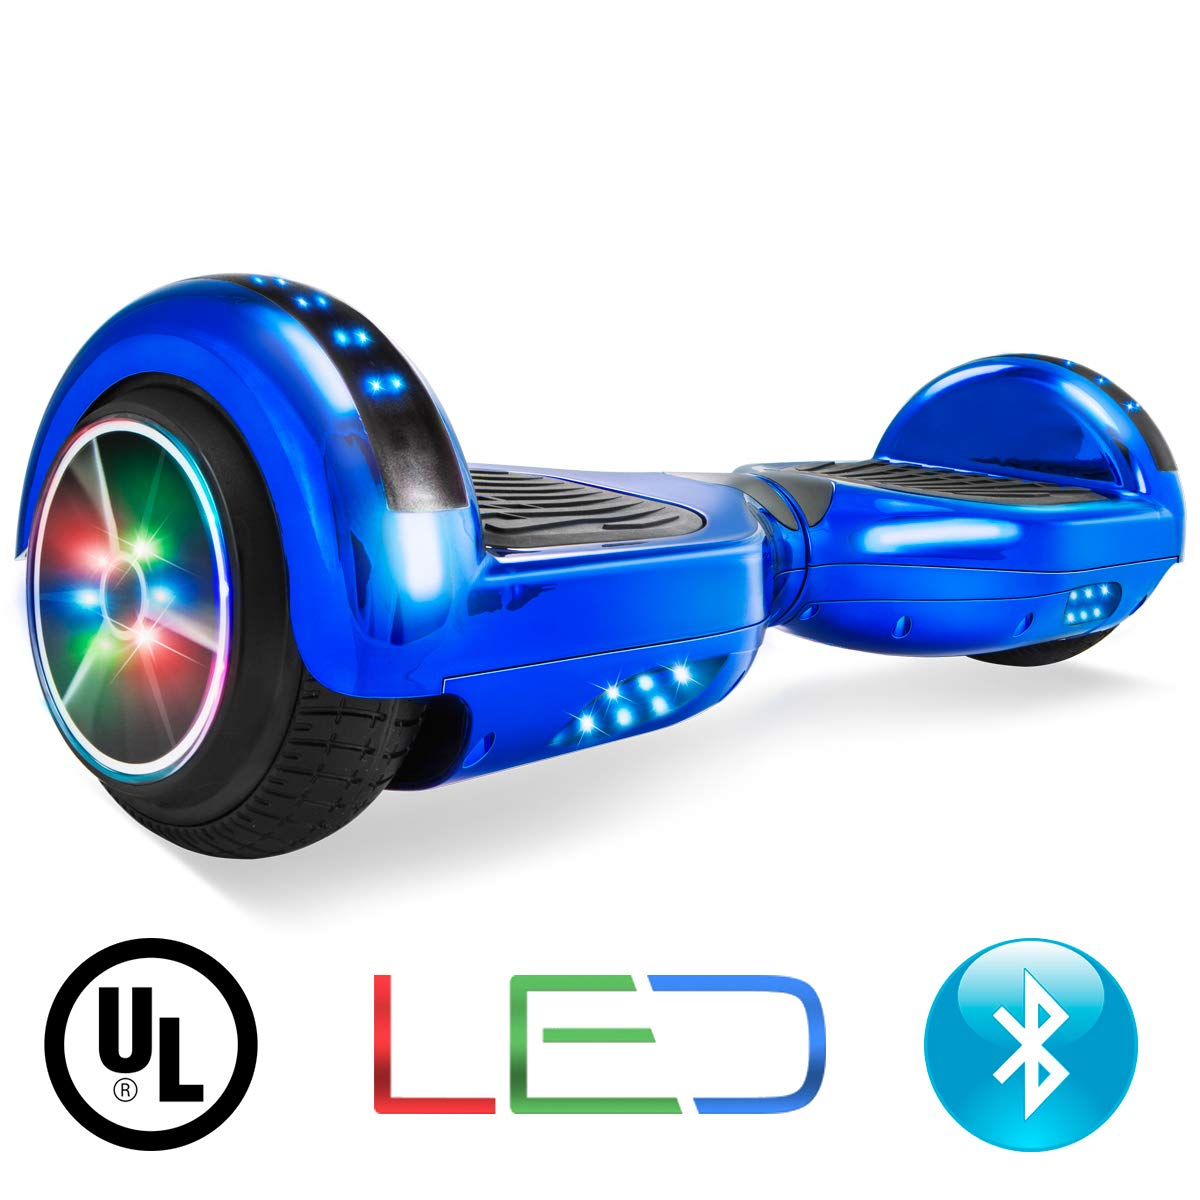 Amazon.com: Self Balancing Scooter Hoverboard UL2272 ...